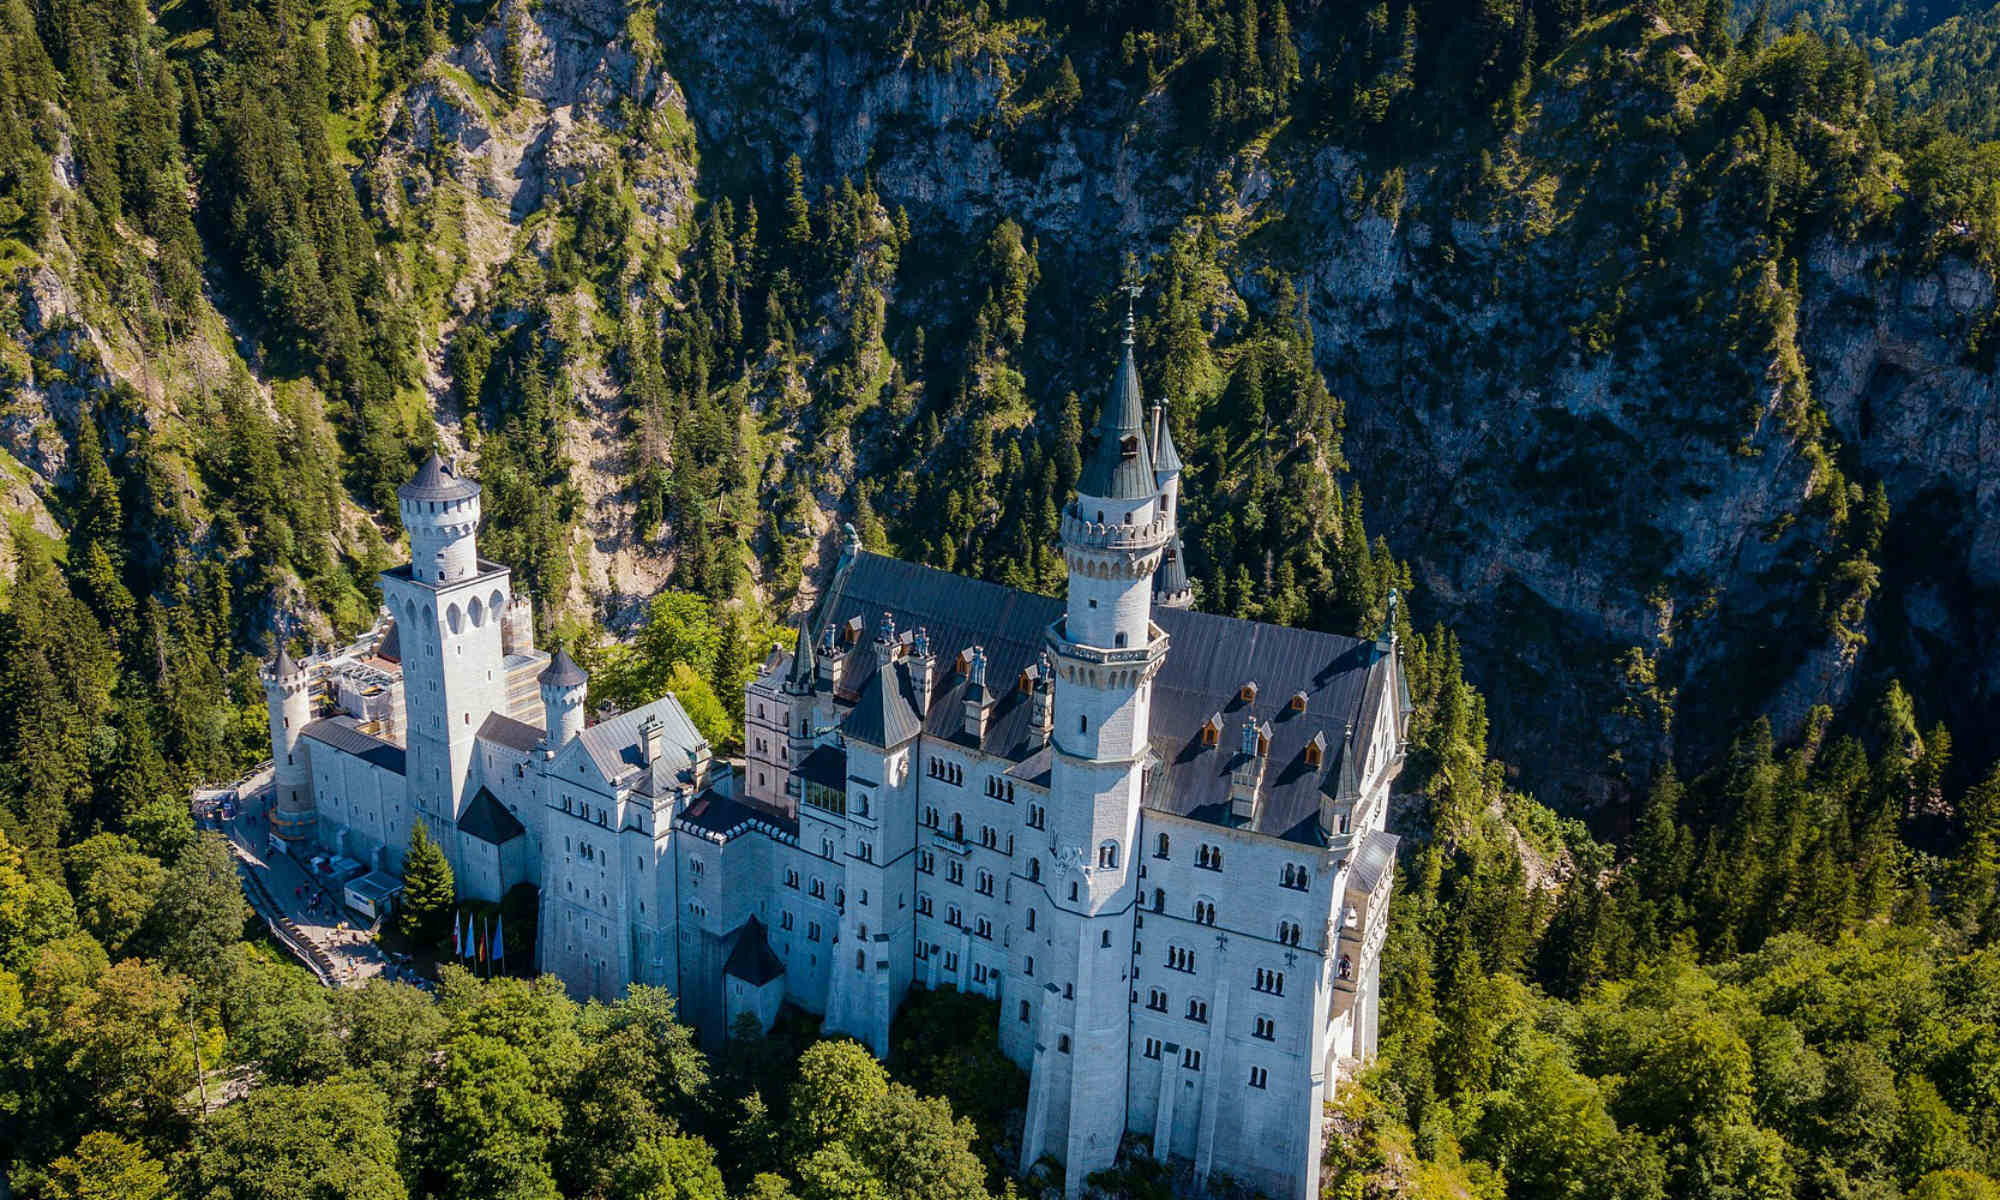 A bird's-eye view of Neuschwanstein castle in Bavaria.